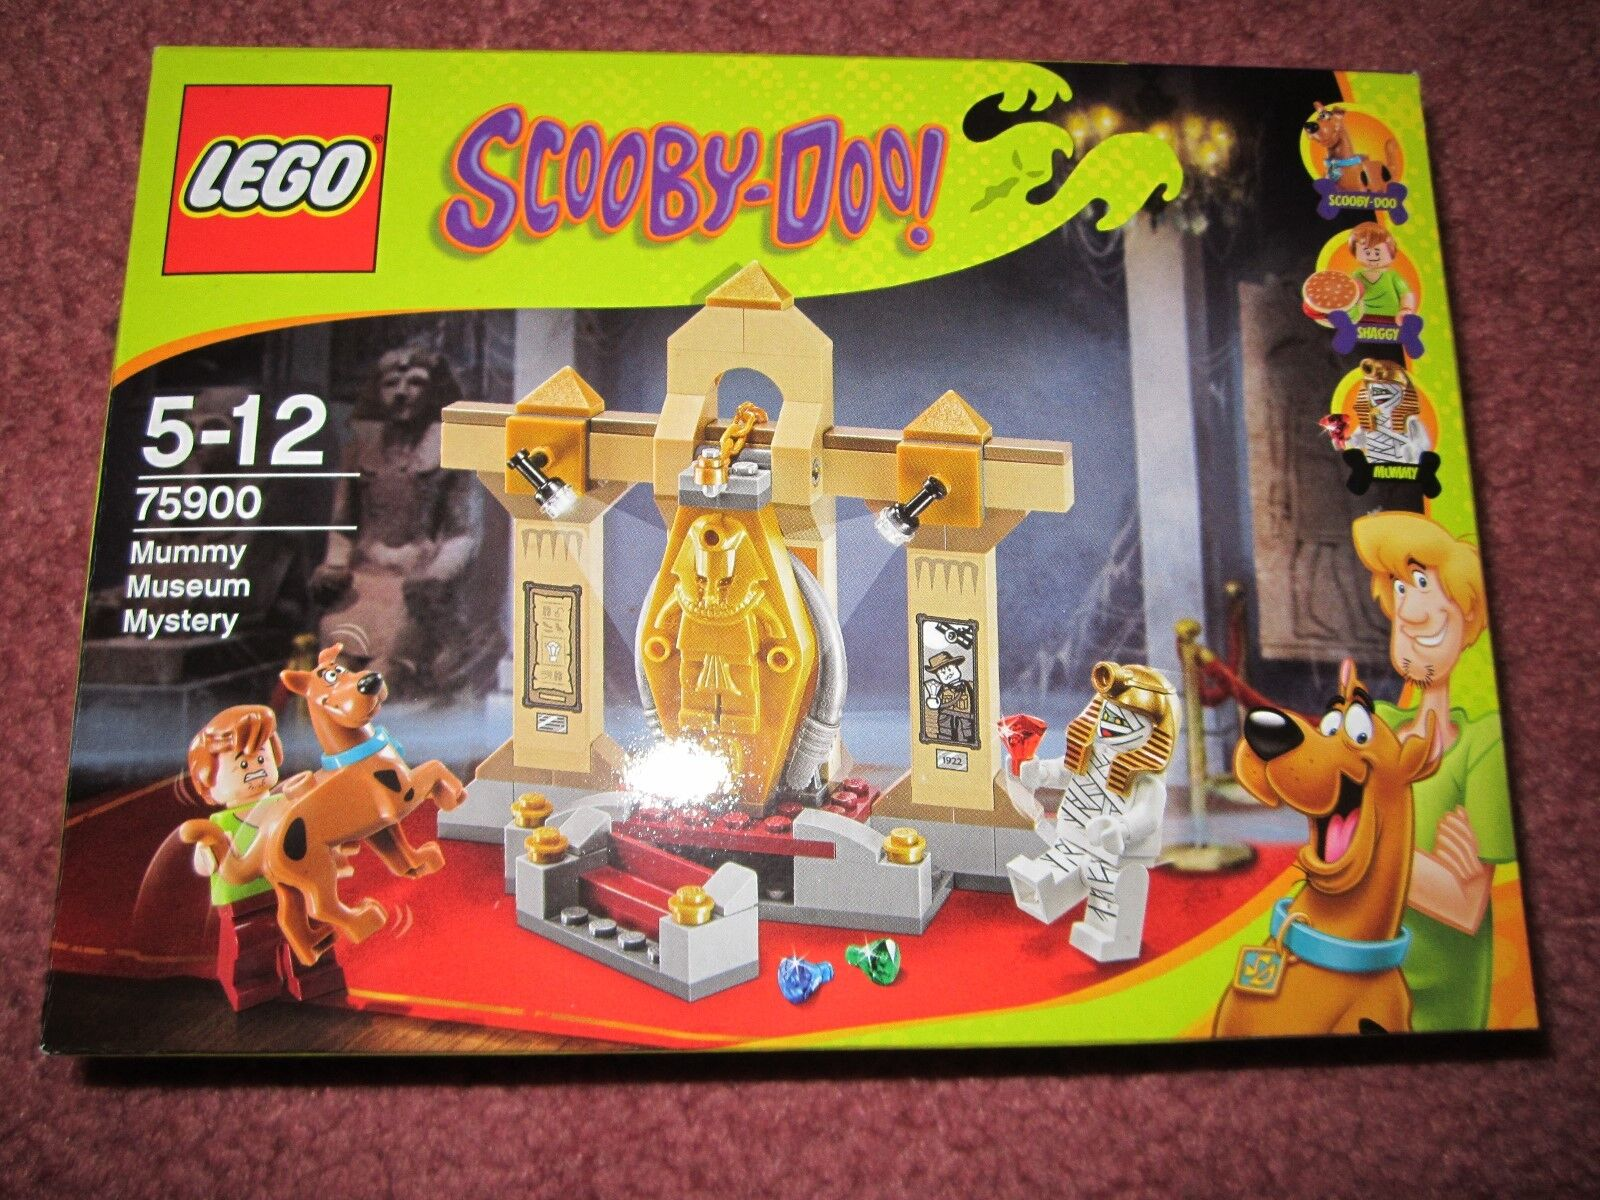 LEGO SCOOBY-DOO MUMMY MUSEUM MYSTERY 75900 - NEW BOXED SEALED